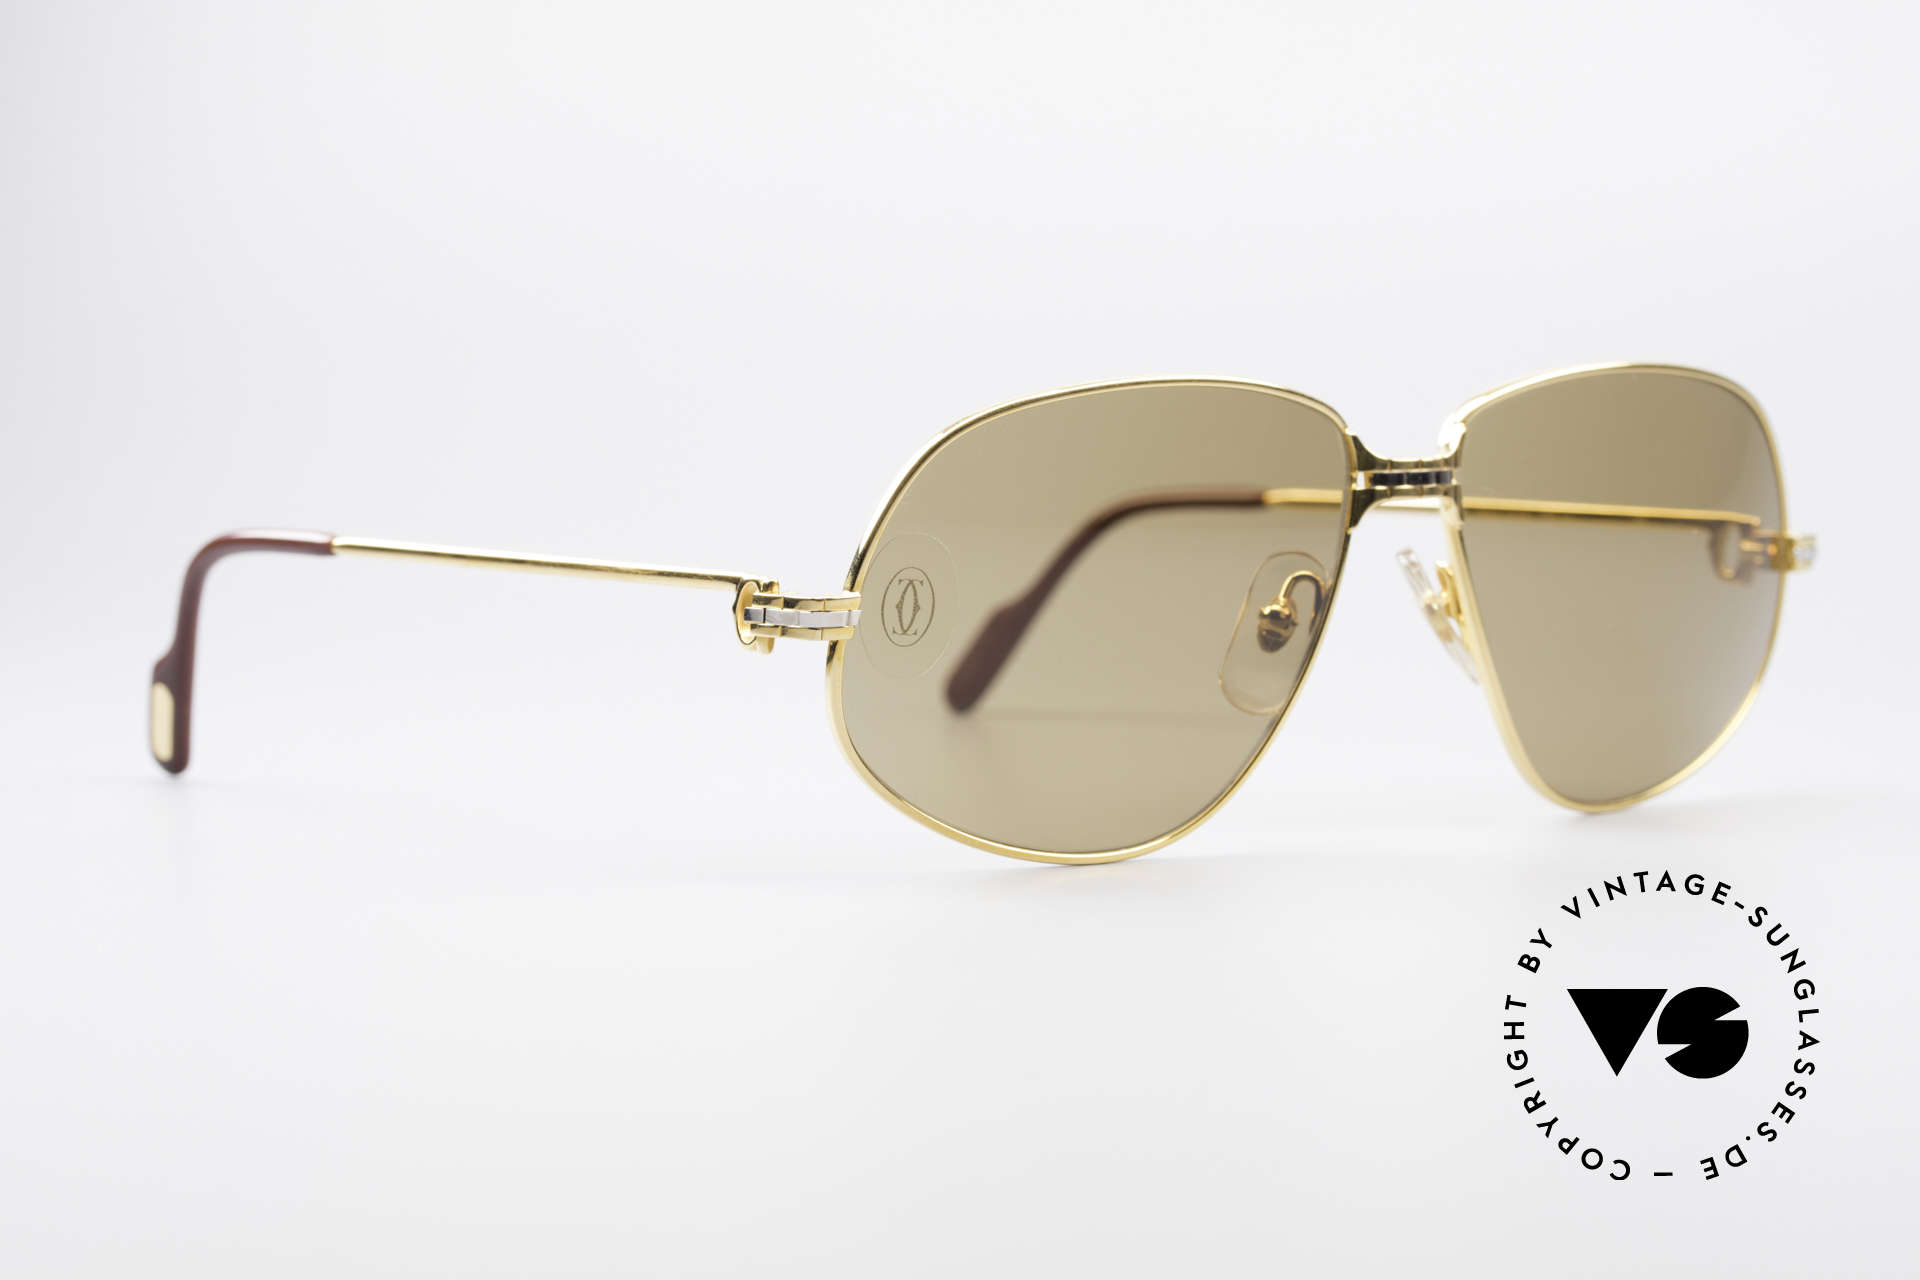 """Cartier Panthere G.M. - L Rare Luxury Sunglasses, mod. """"Panthère"""" was launched in 1988 and made till 1997, Made for Men"""